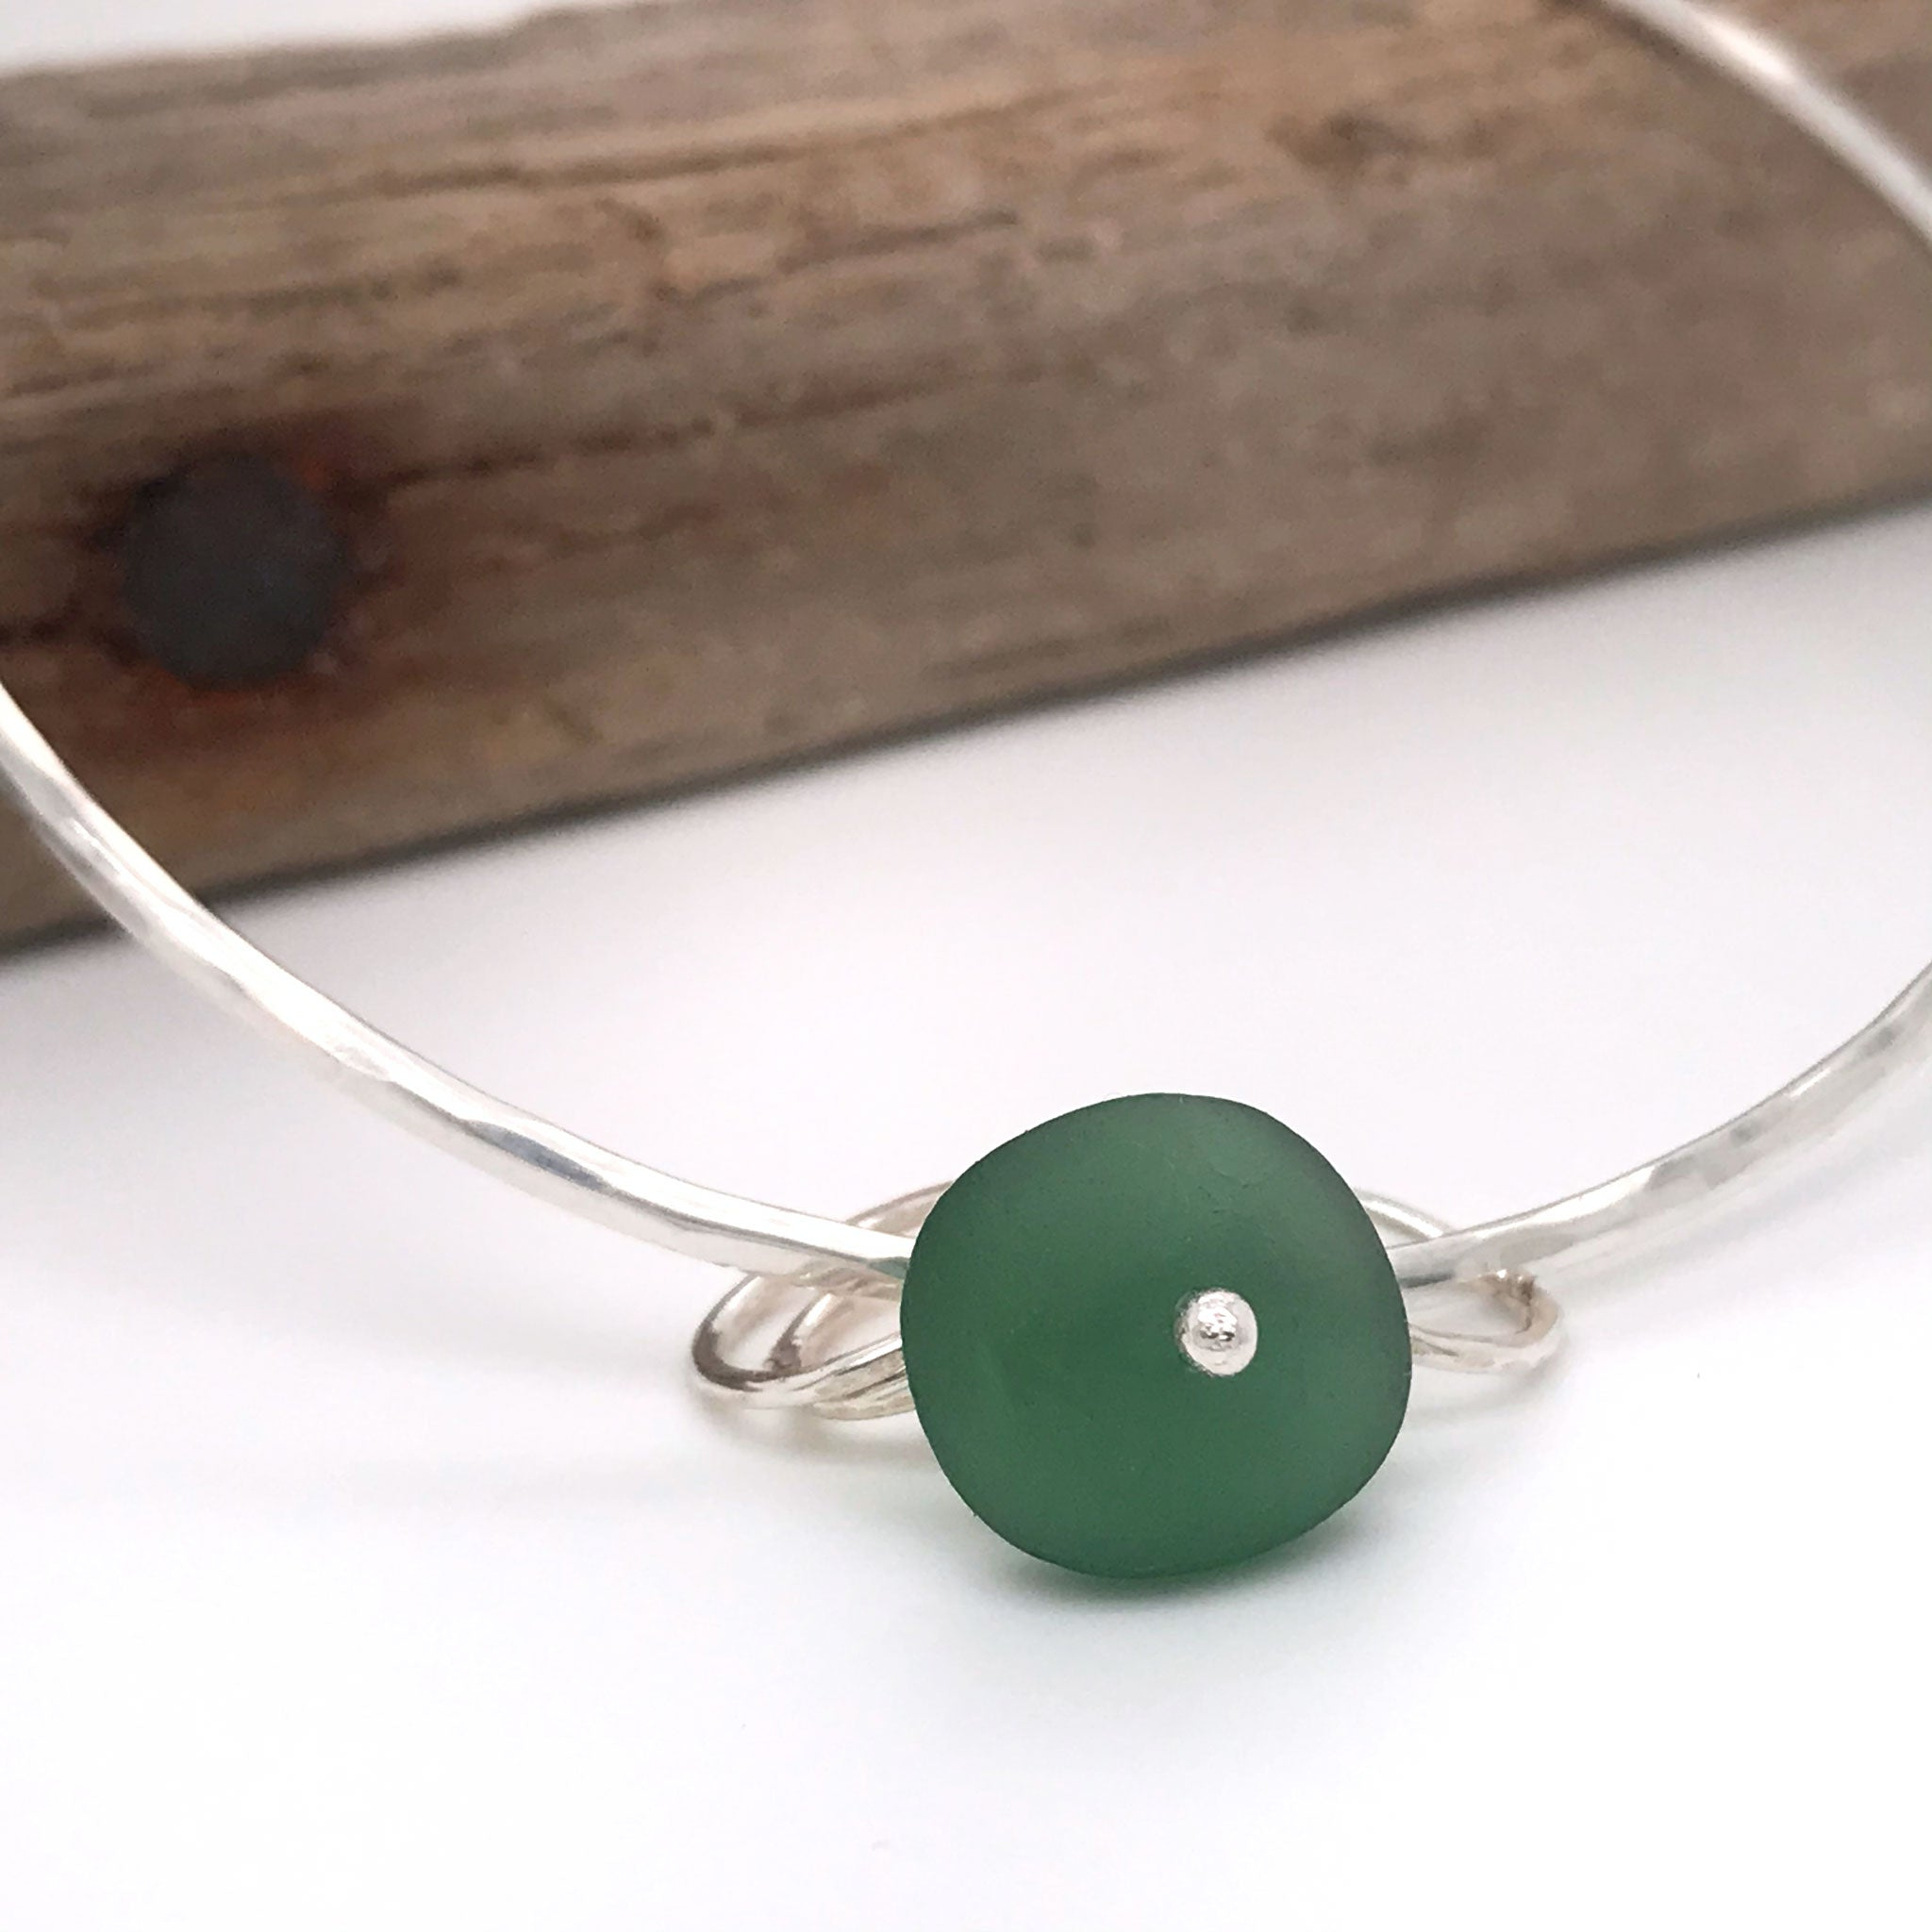 green beach glass bangle sterling silver Kriket broadhurst jewellery made in Sydney